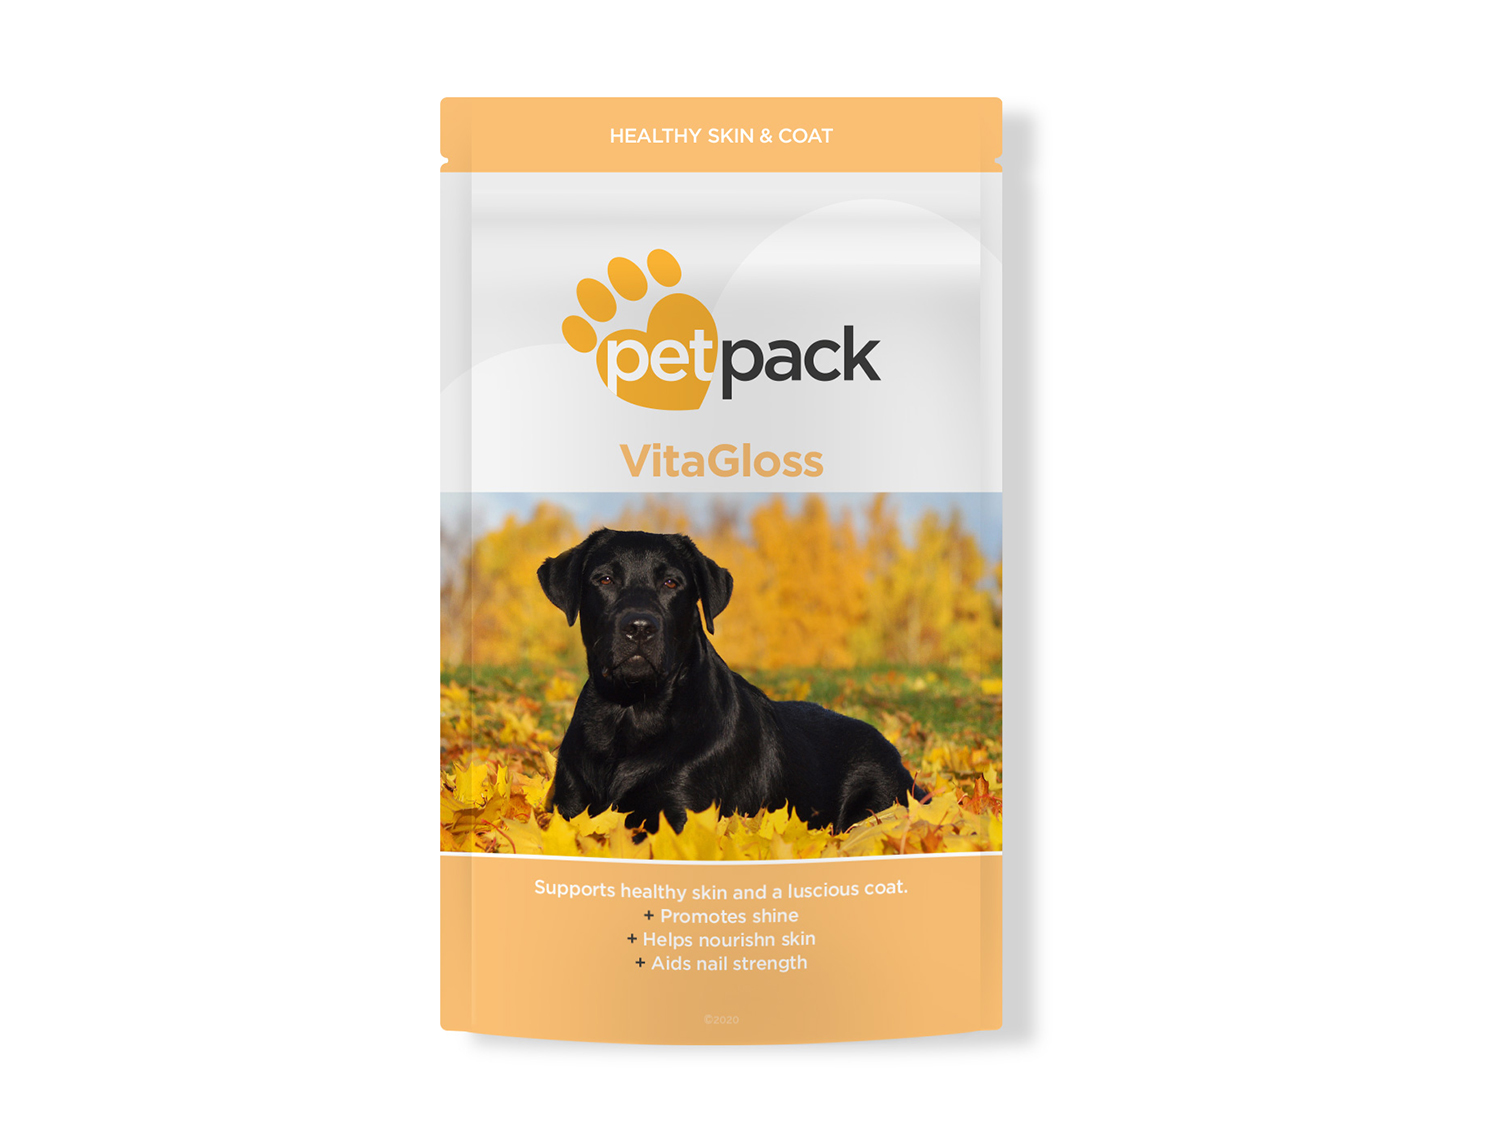 PetPack Packaging Design VitaGloss - My Name is Dan